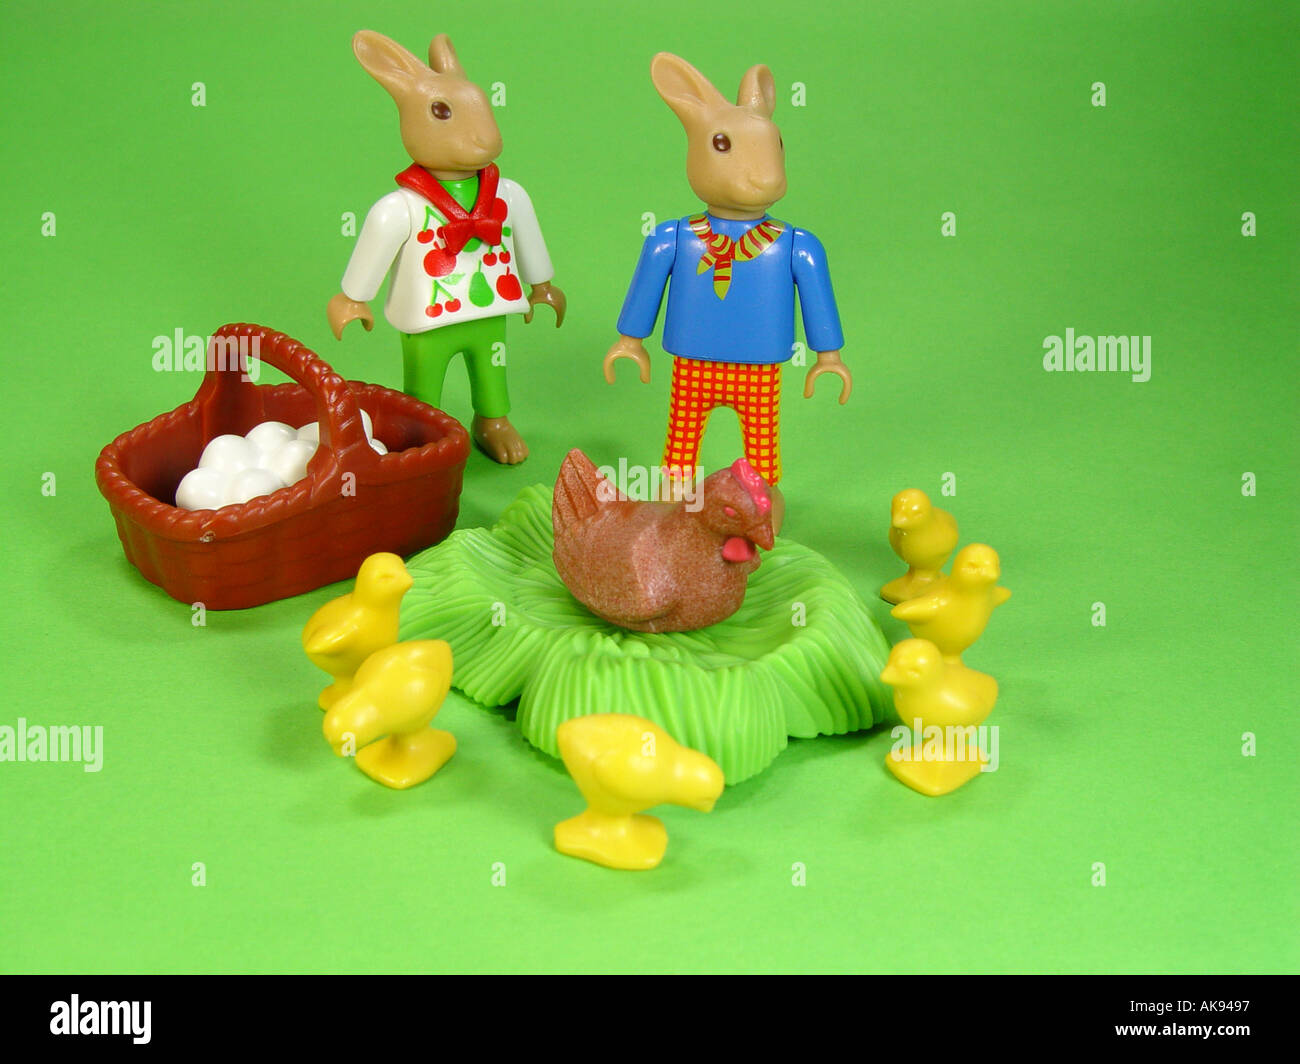 Easter Bunny As Symbol For The Tradition To Easter Stock Photo ...